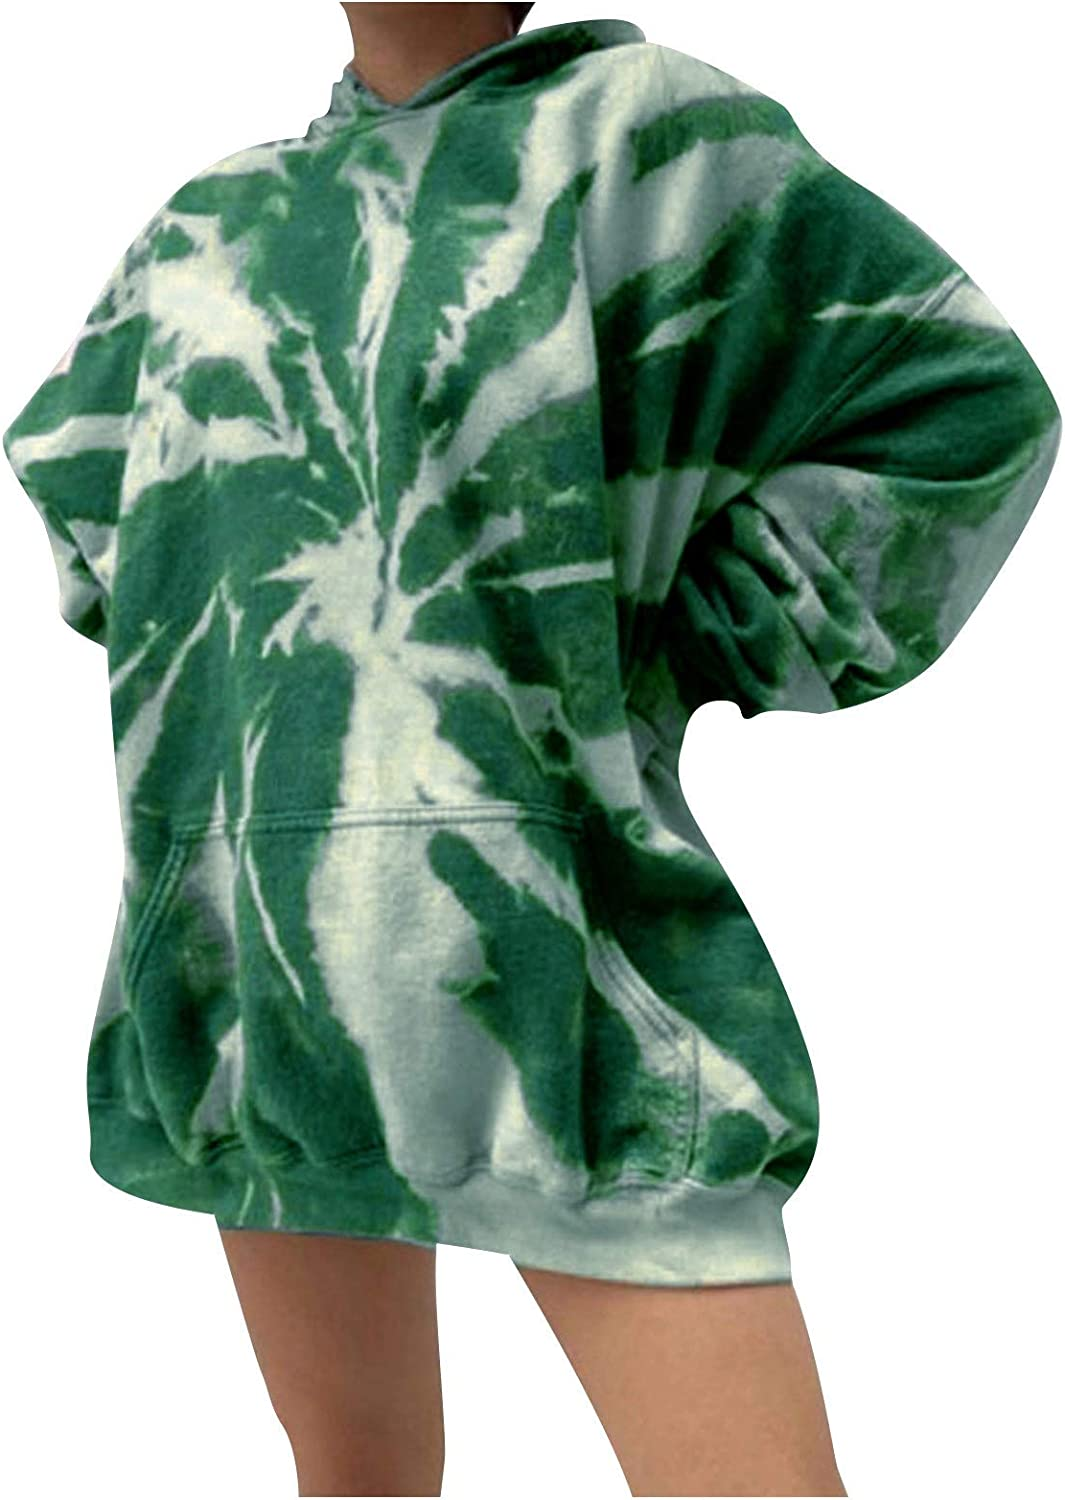 Forwelly Women Oversize Hoodies Fashion Tie-Dye Printed Hooded Sweatshirts Pullover Casual Long Sleeve Tunic Tops